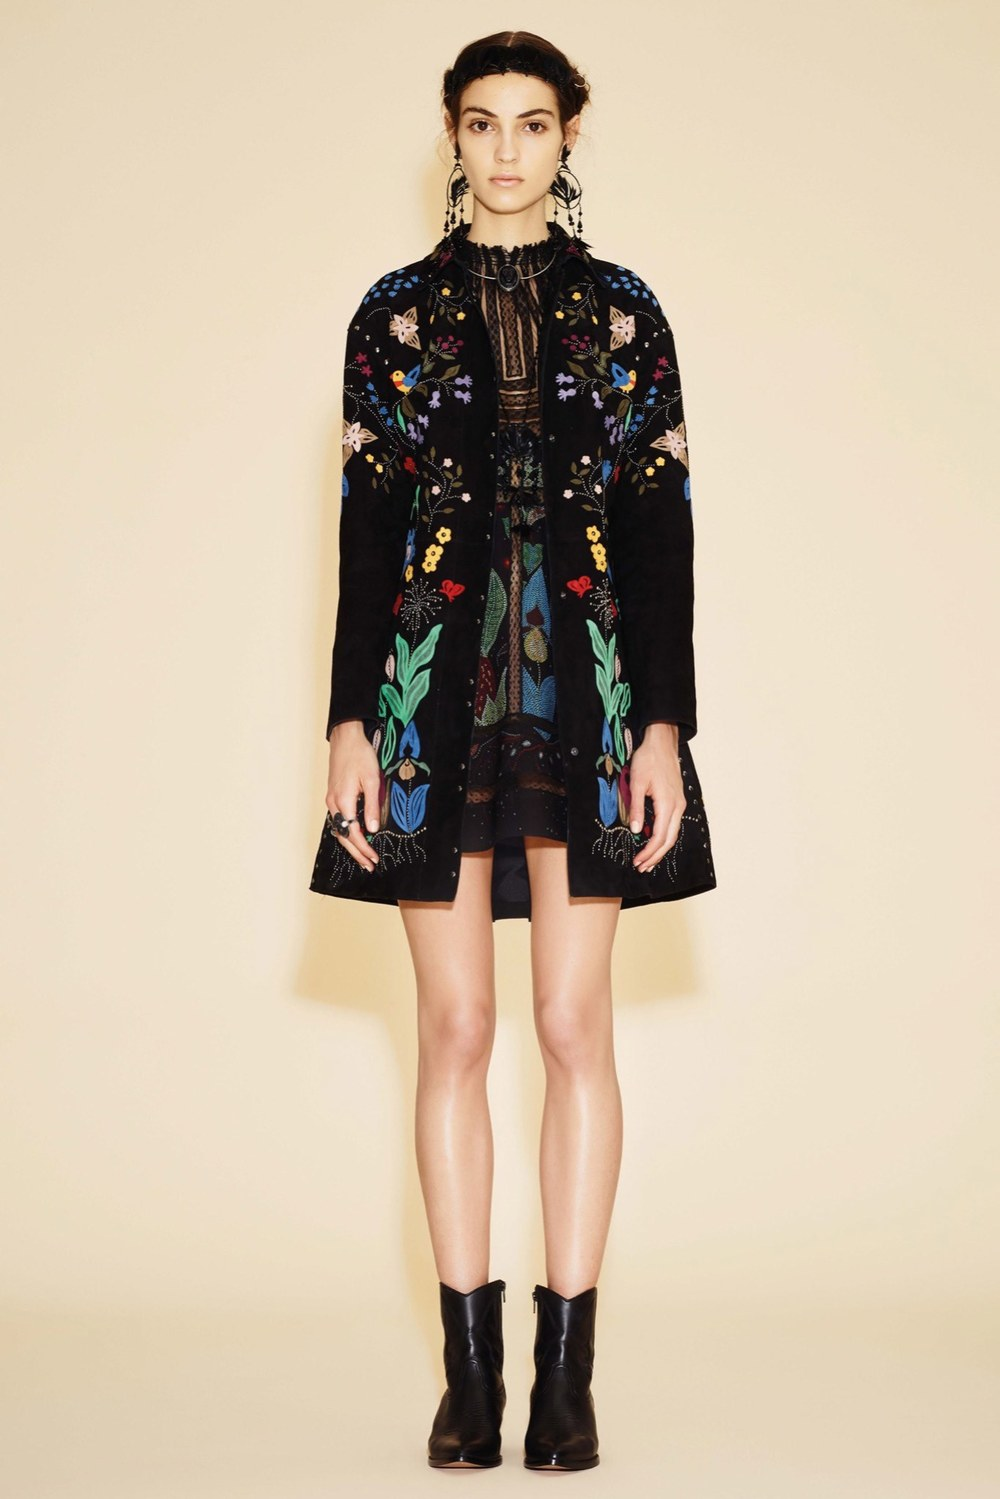 Boho-Chic :: Appliqués, Embroidery & Embellishments - The Entertaining House Image via Vogue/Valentino